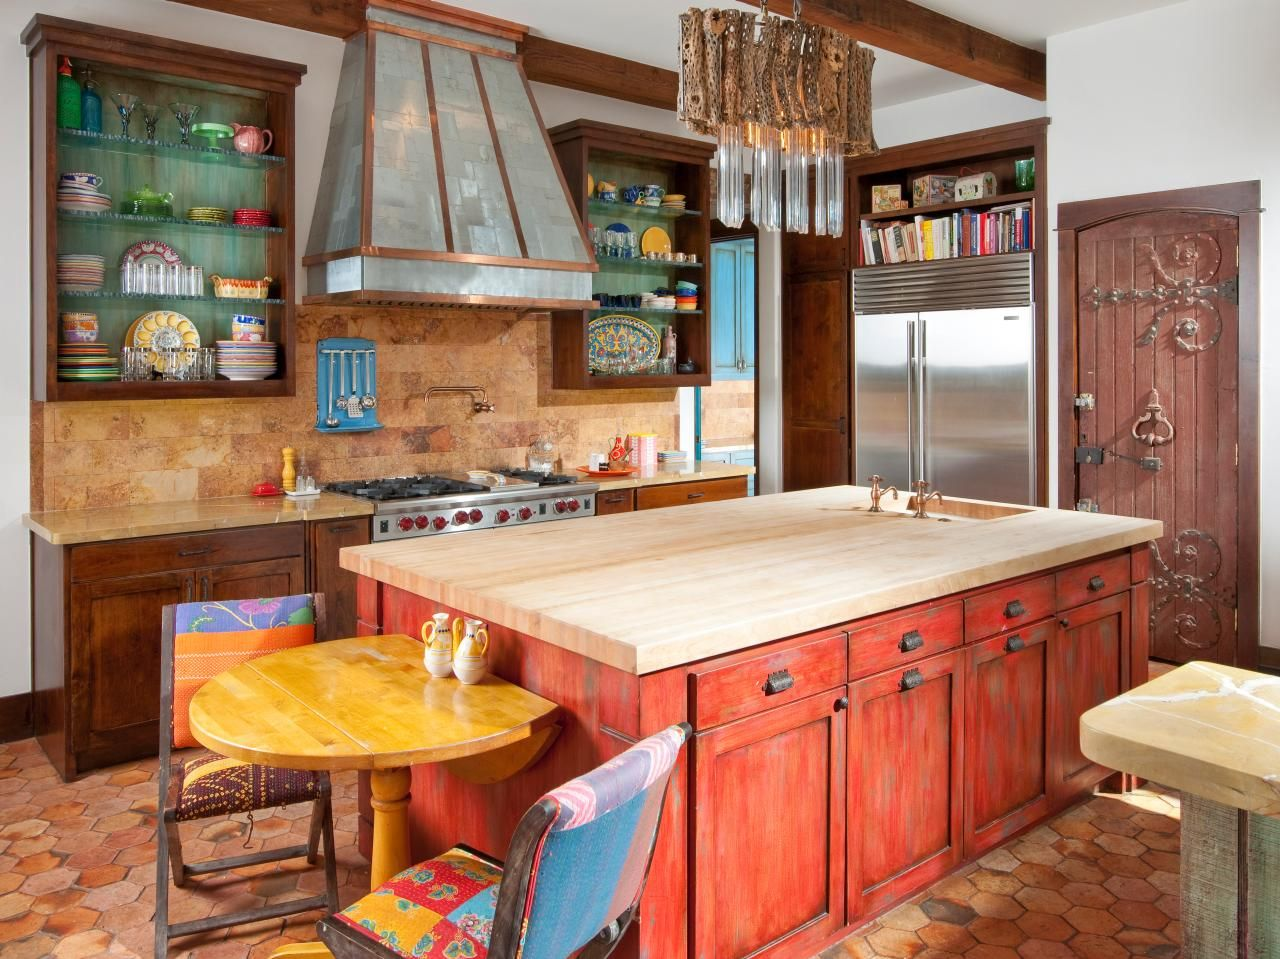 pictures of small kitchen design ideas from hgtv   kitchen